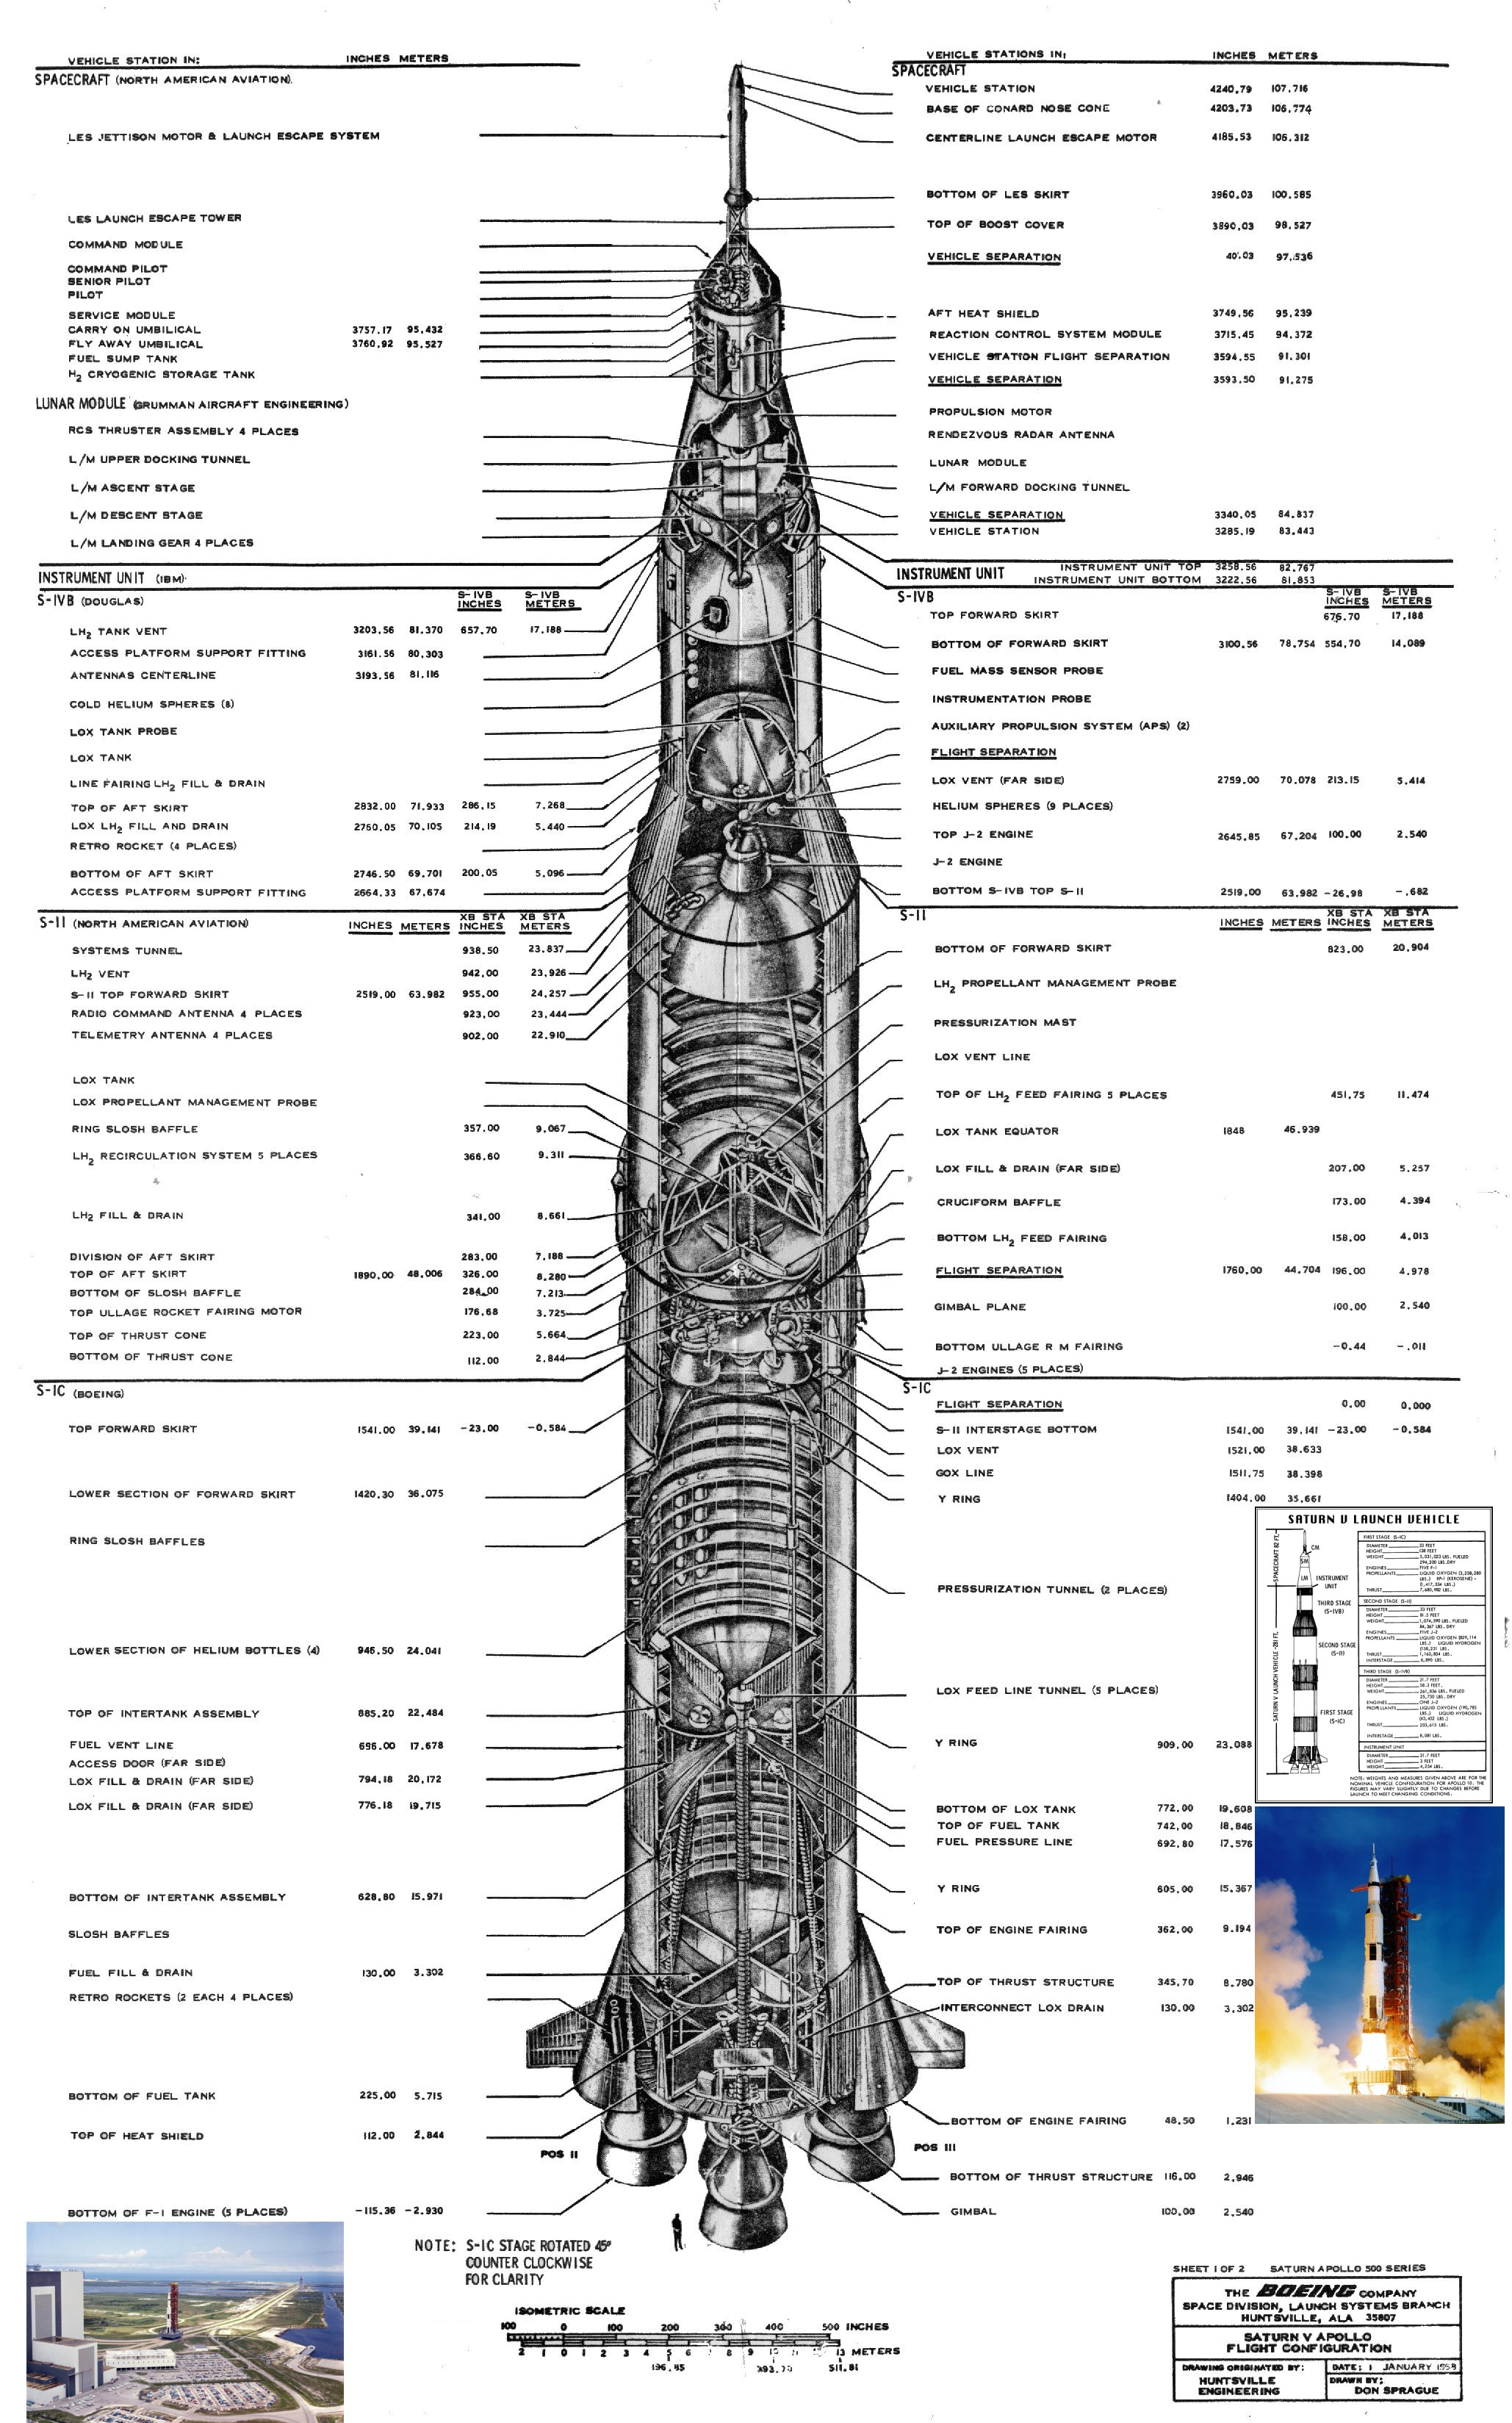 Nasa Rover Schematics